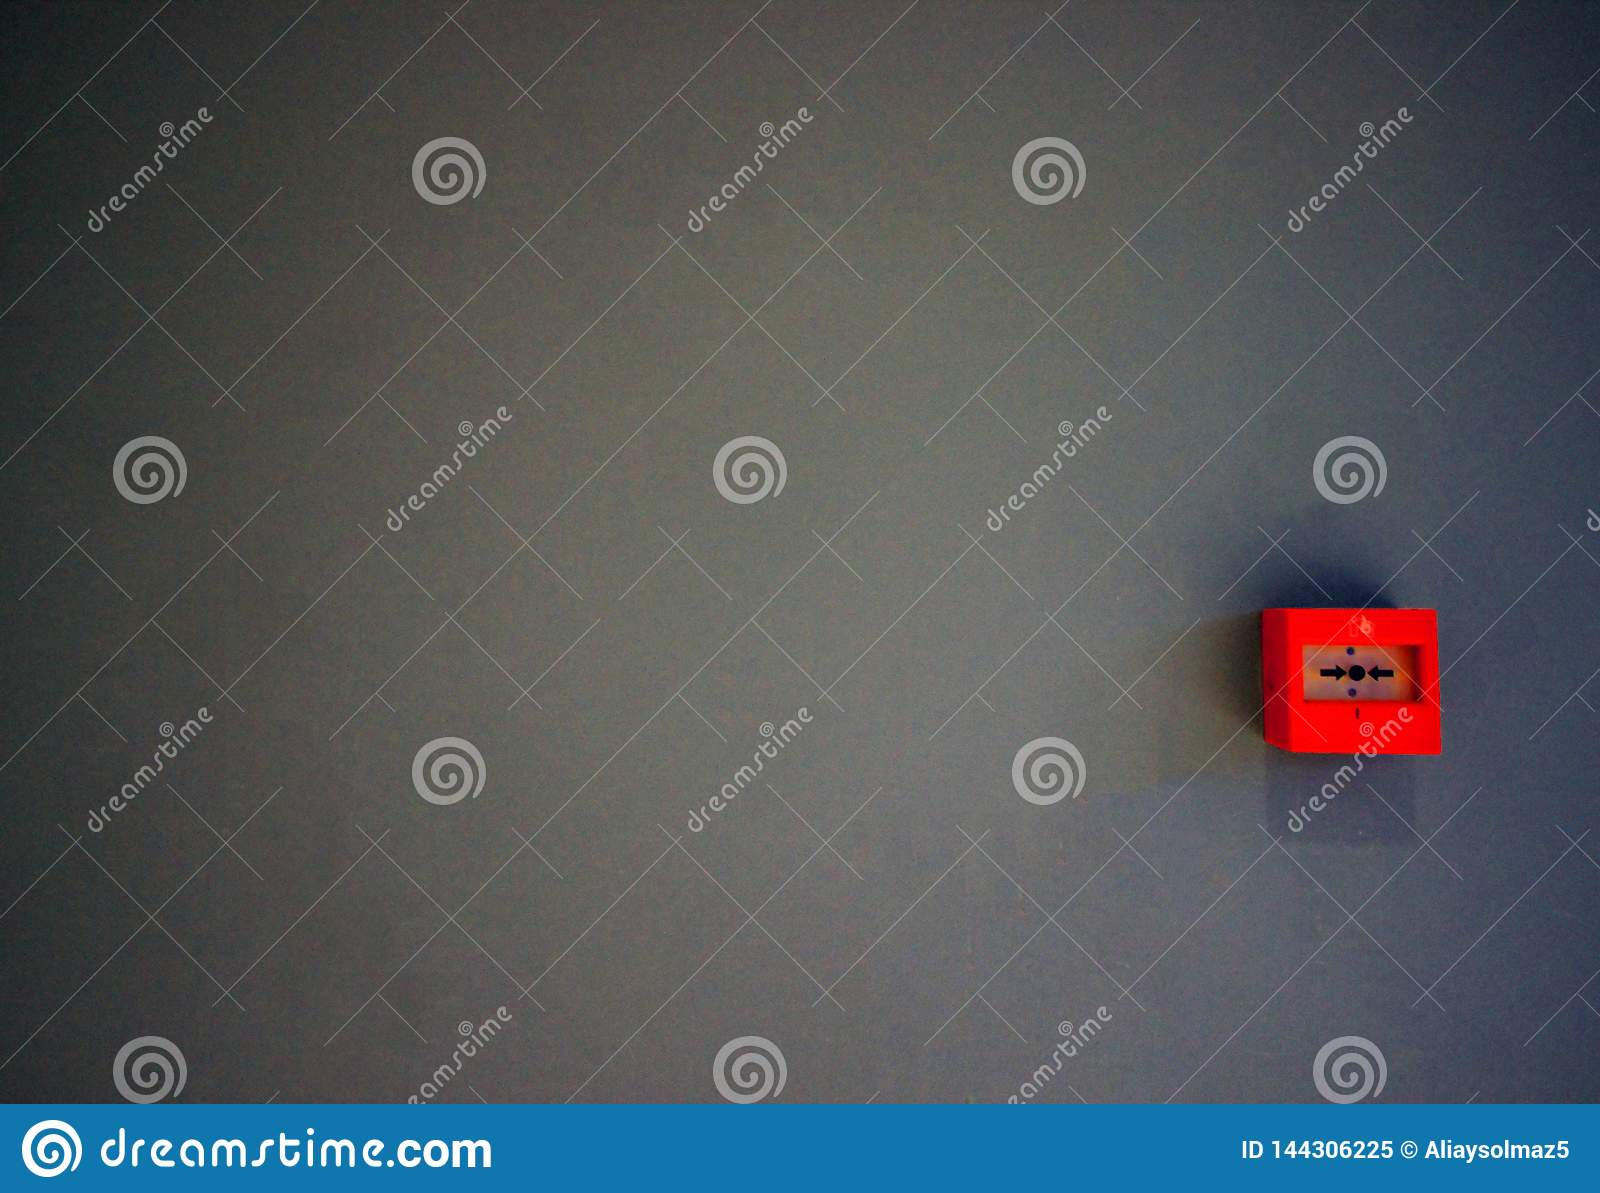 Emergency Fire Switch or Button Placed on the Grey Wall, Rescue Automation, Fire Bell